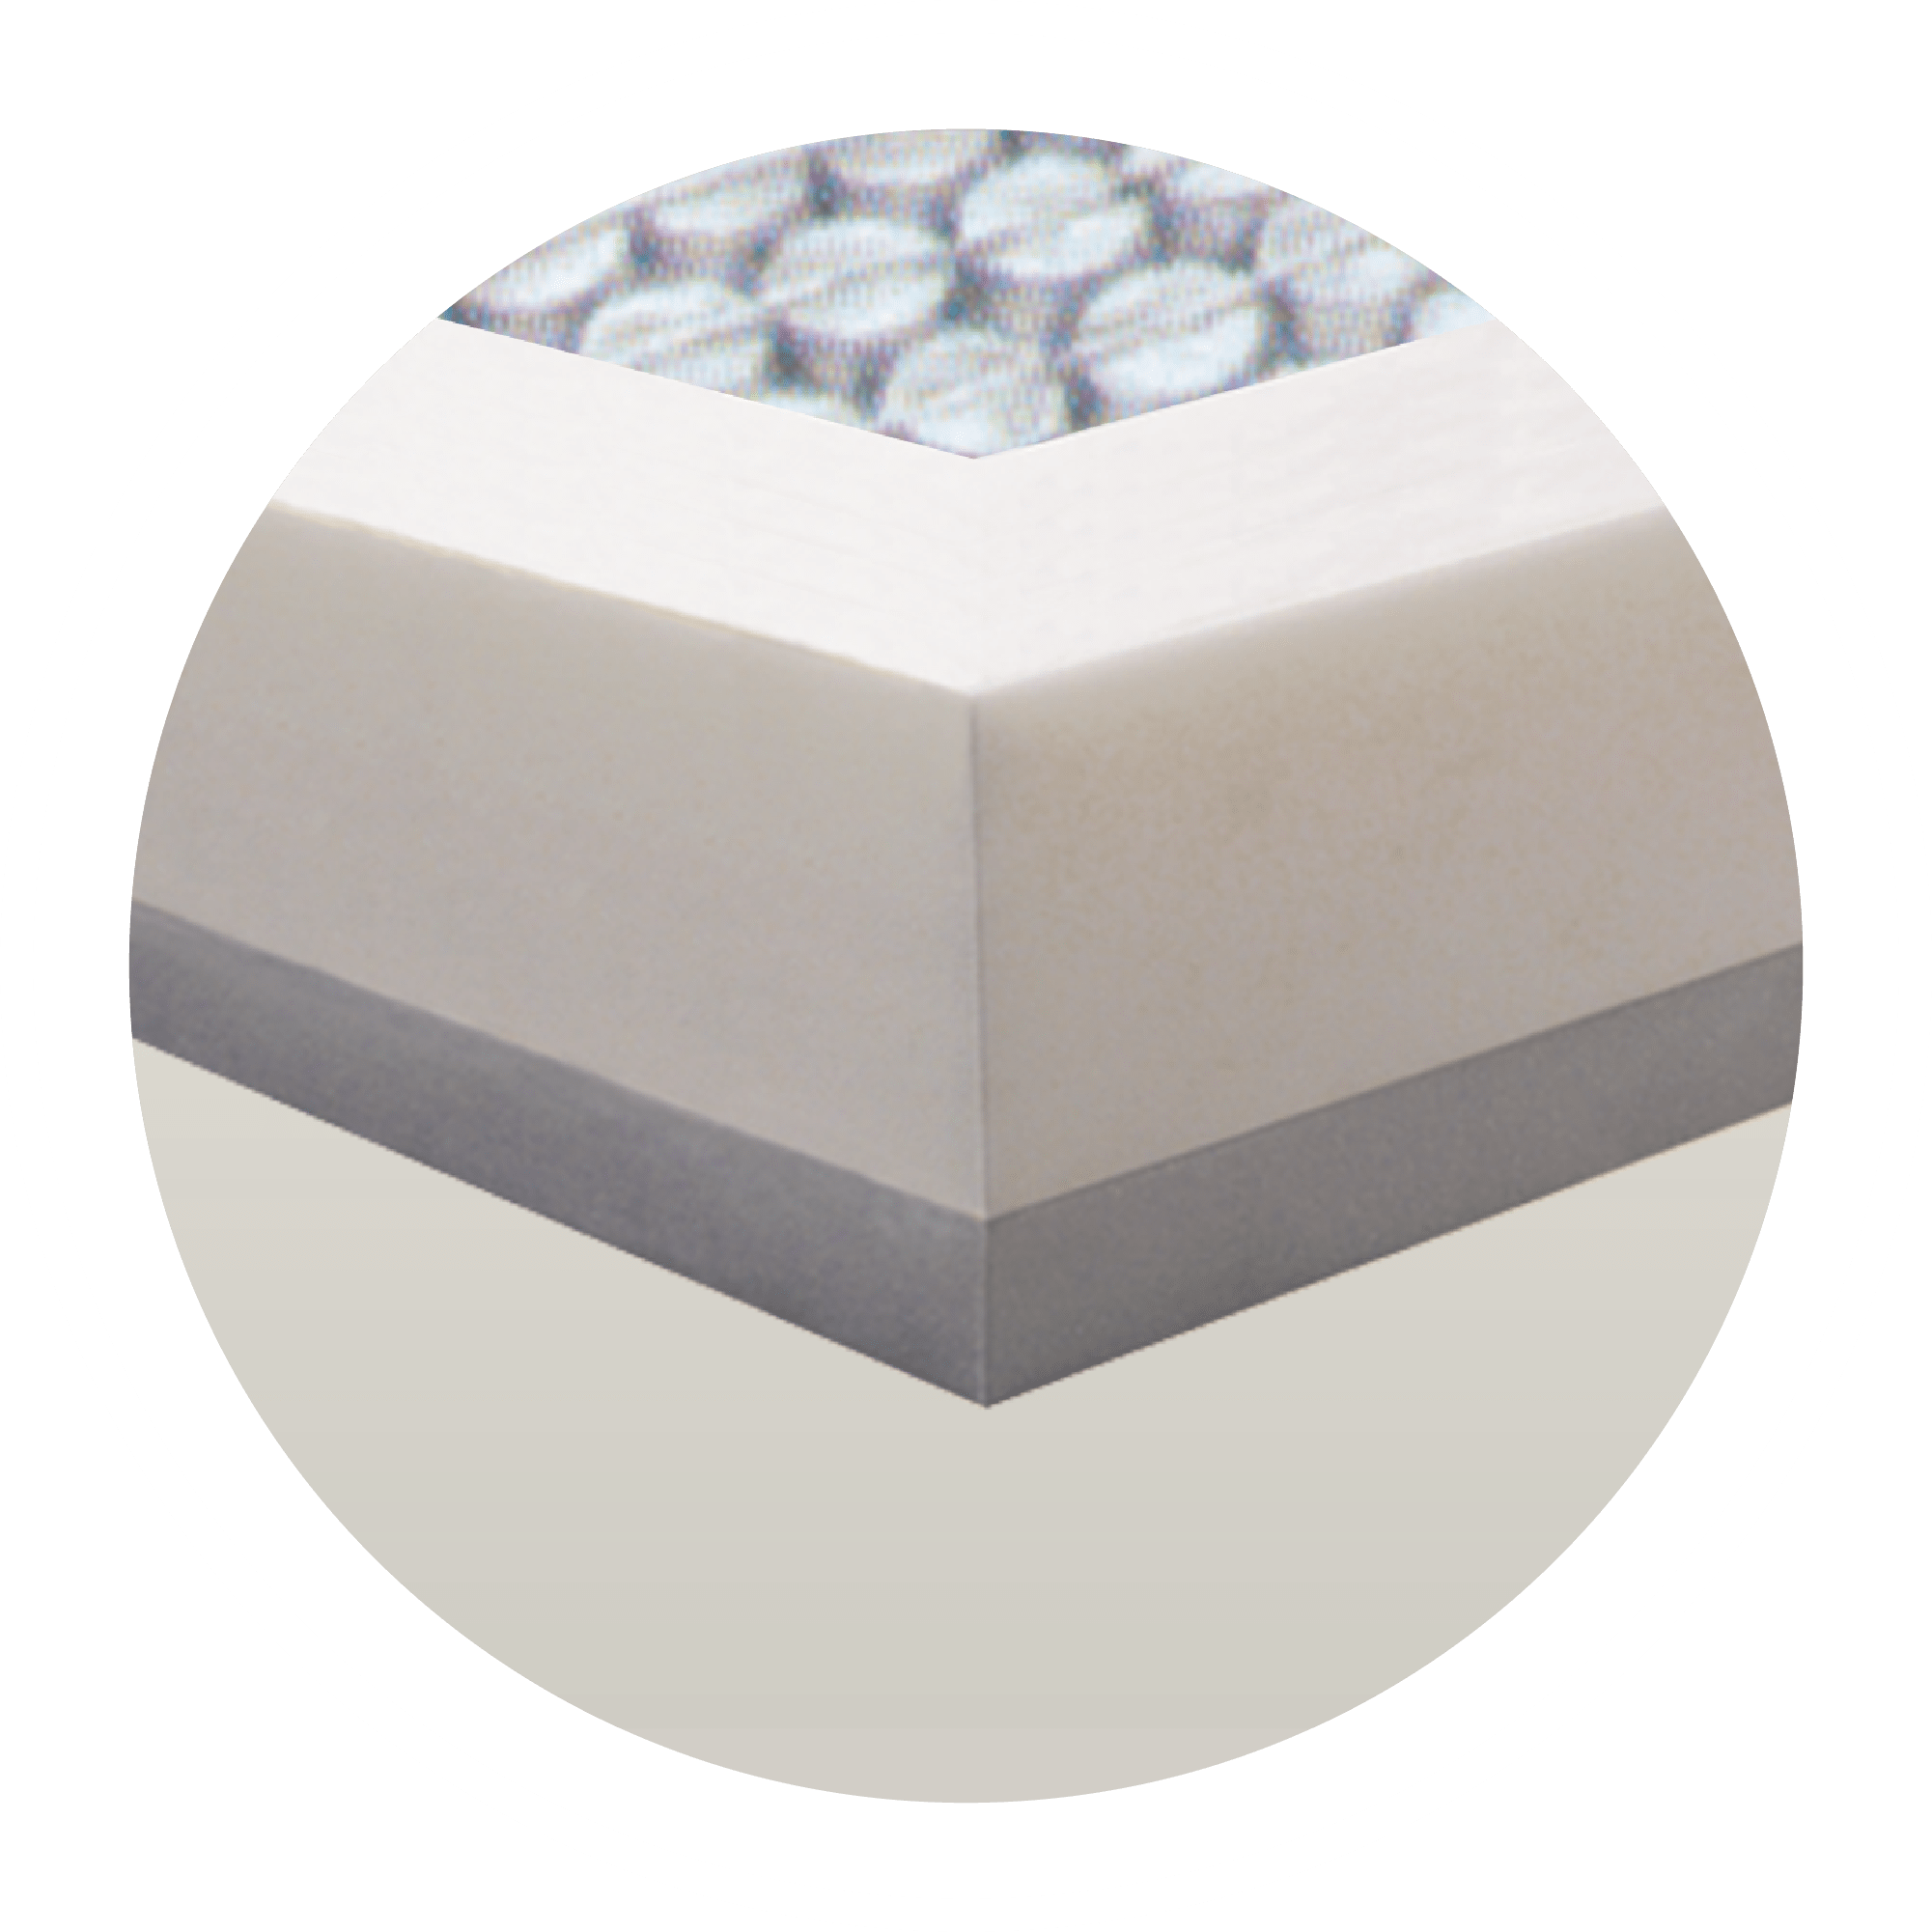 High-density foam is encased to the perimeter of the mattress pocket coils. It creates a larger sleeping surface and prevents sagging borders.